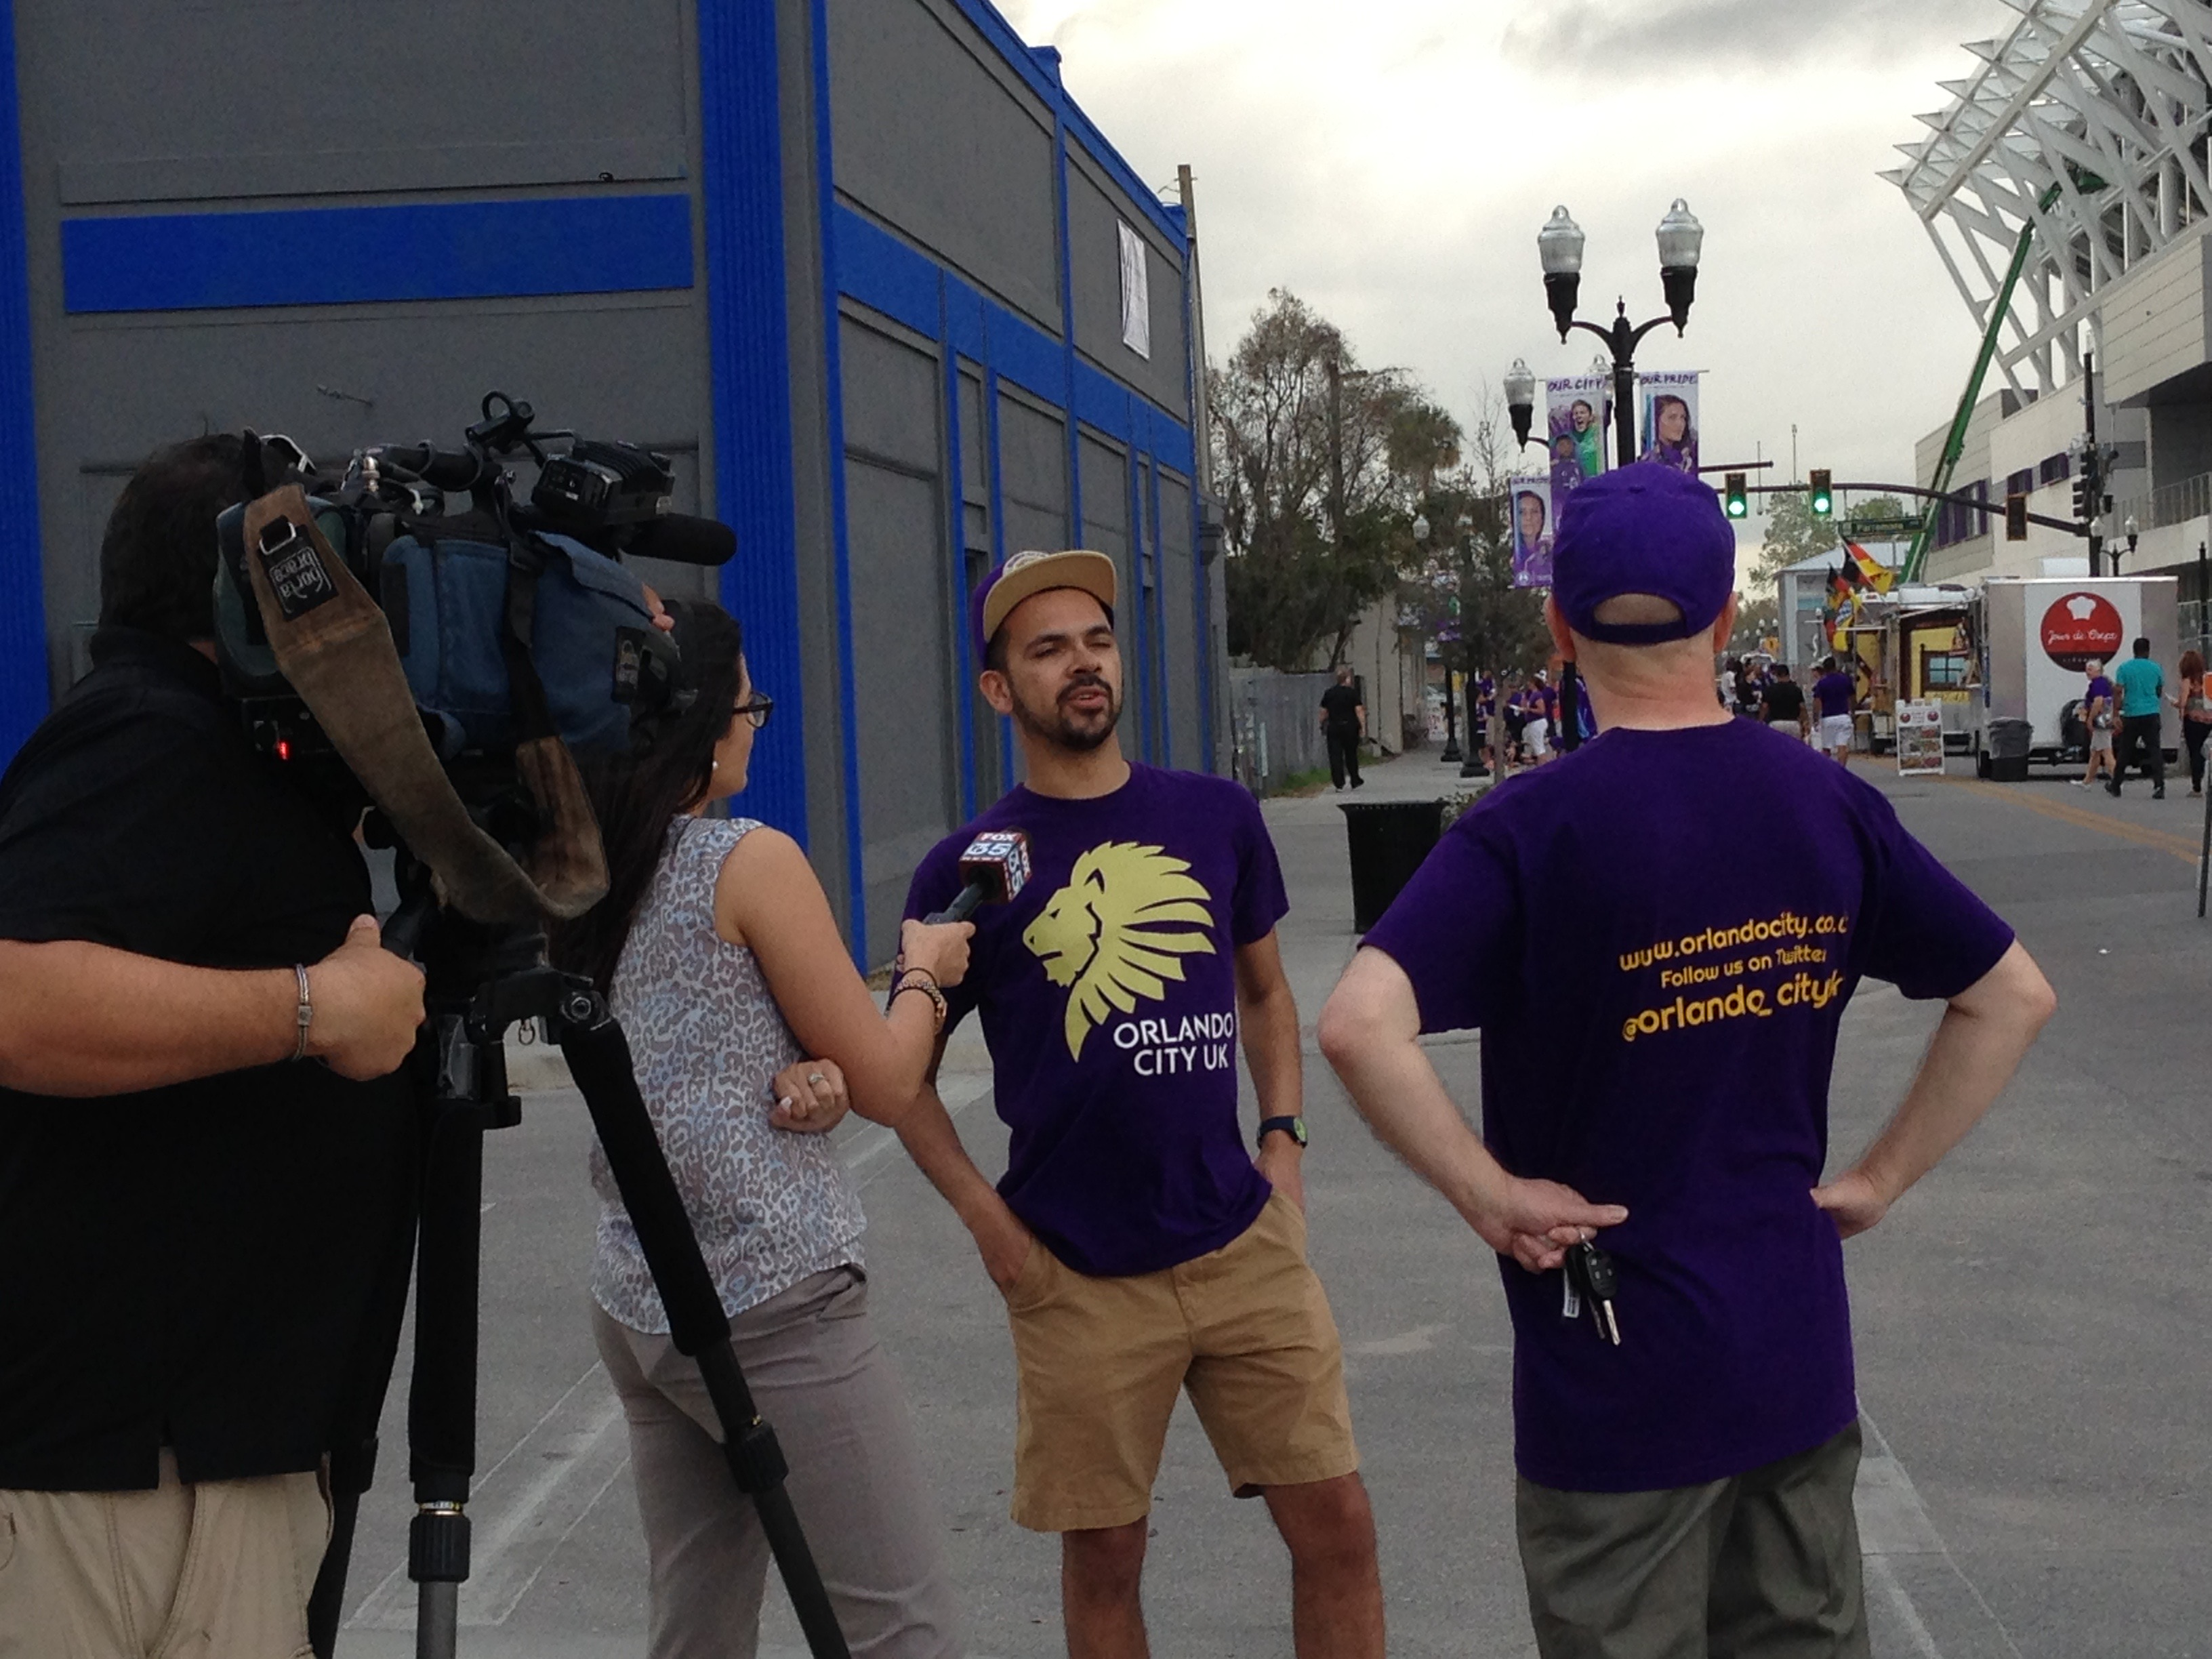 Orlando City UK Press